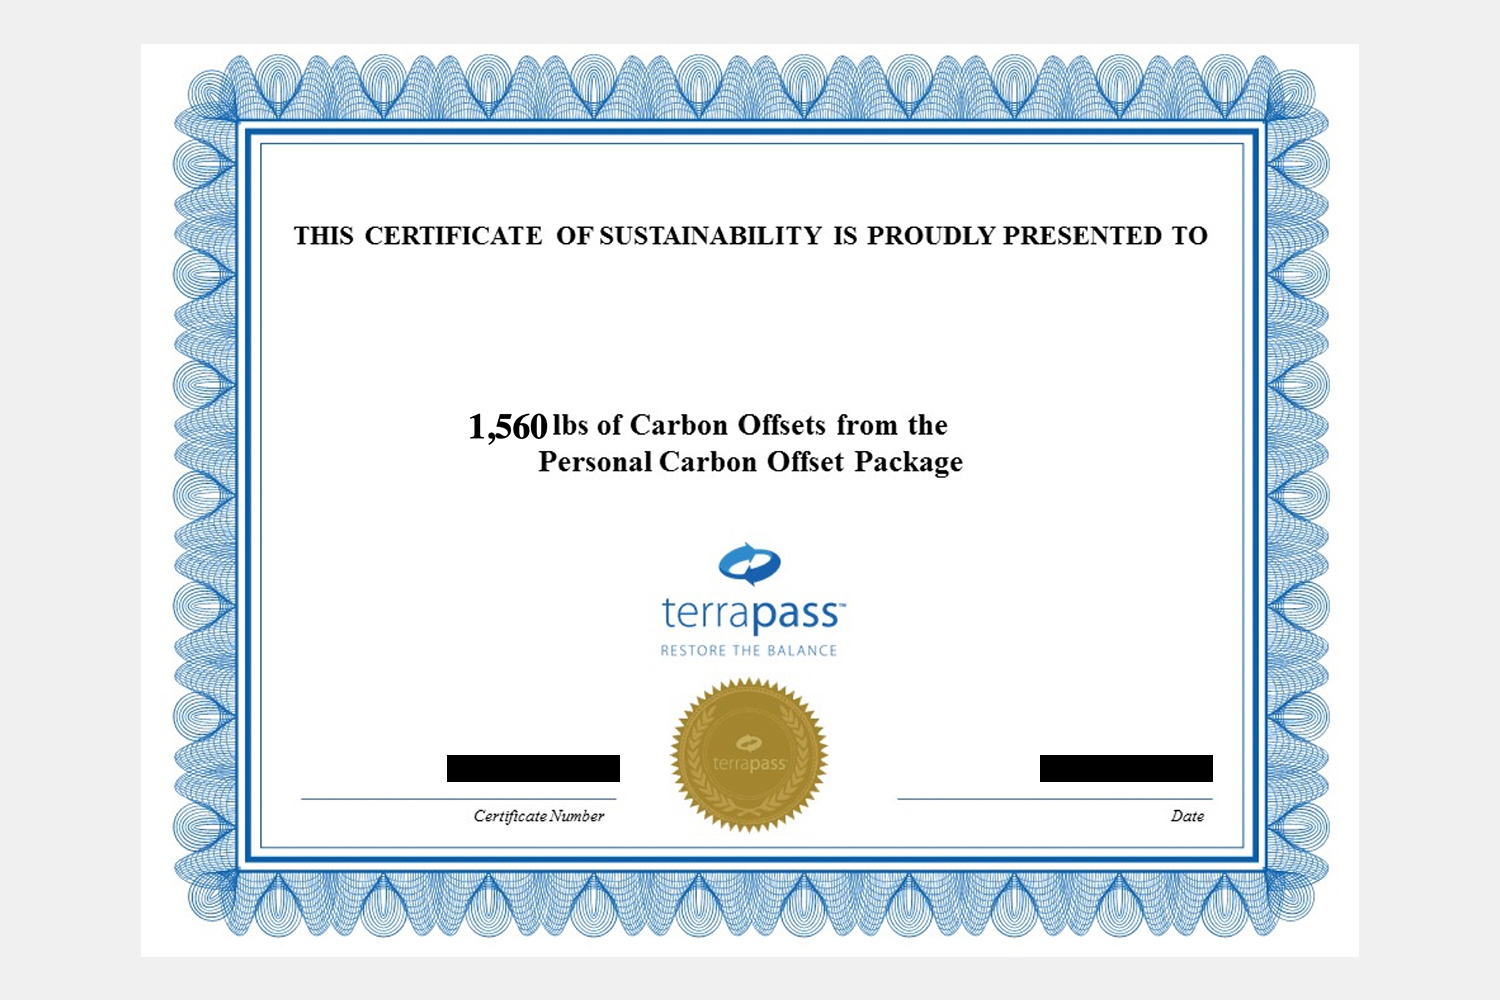 Terrapass carbon offsets certificate for air travel